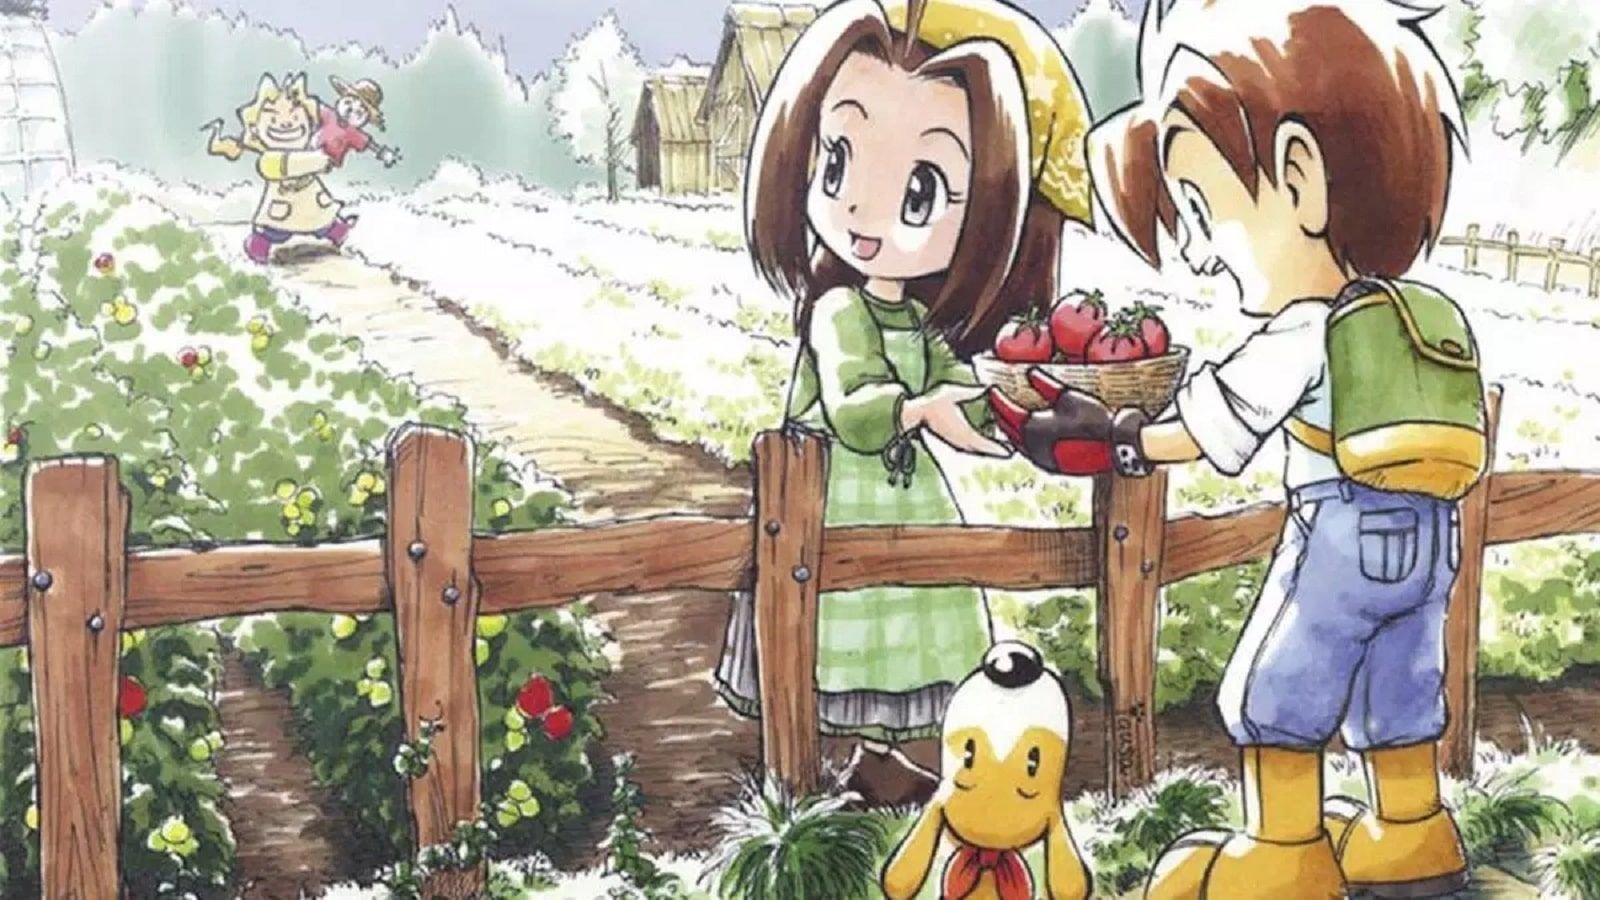 Give me an MMO farming game like Harvest Moon and I'll